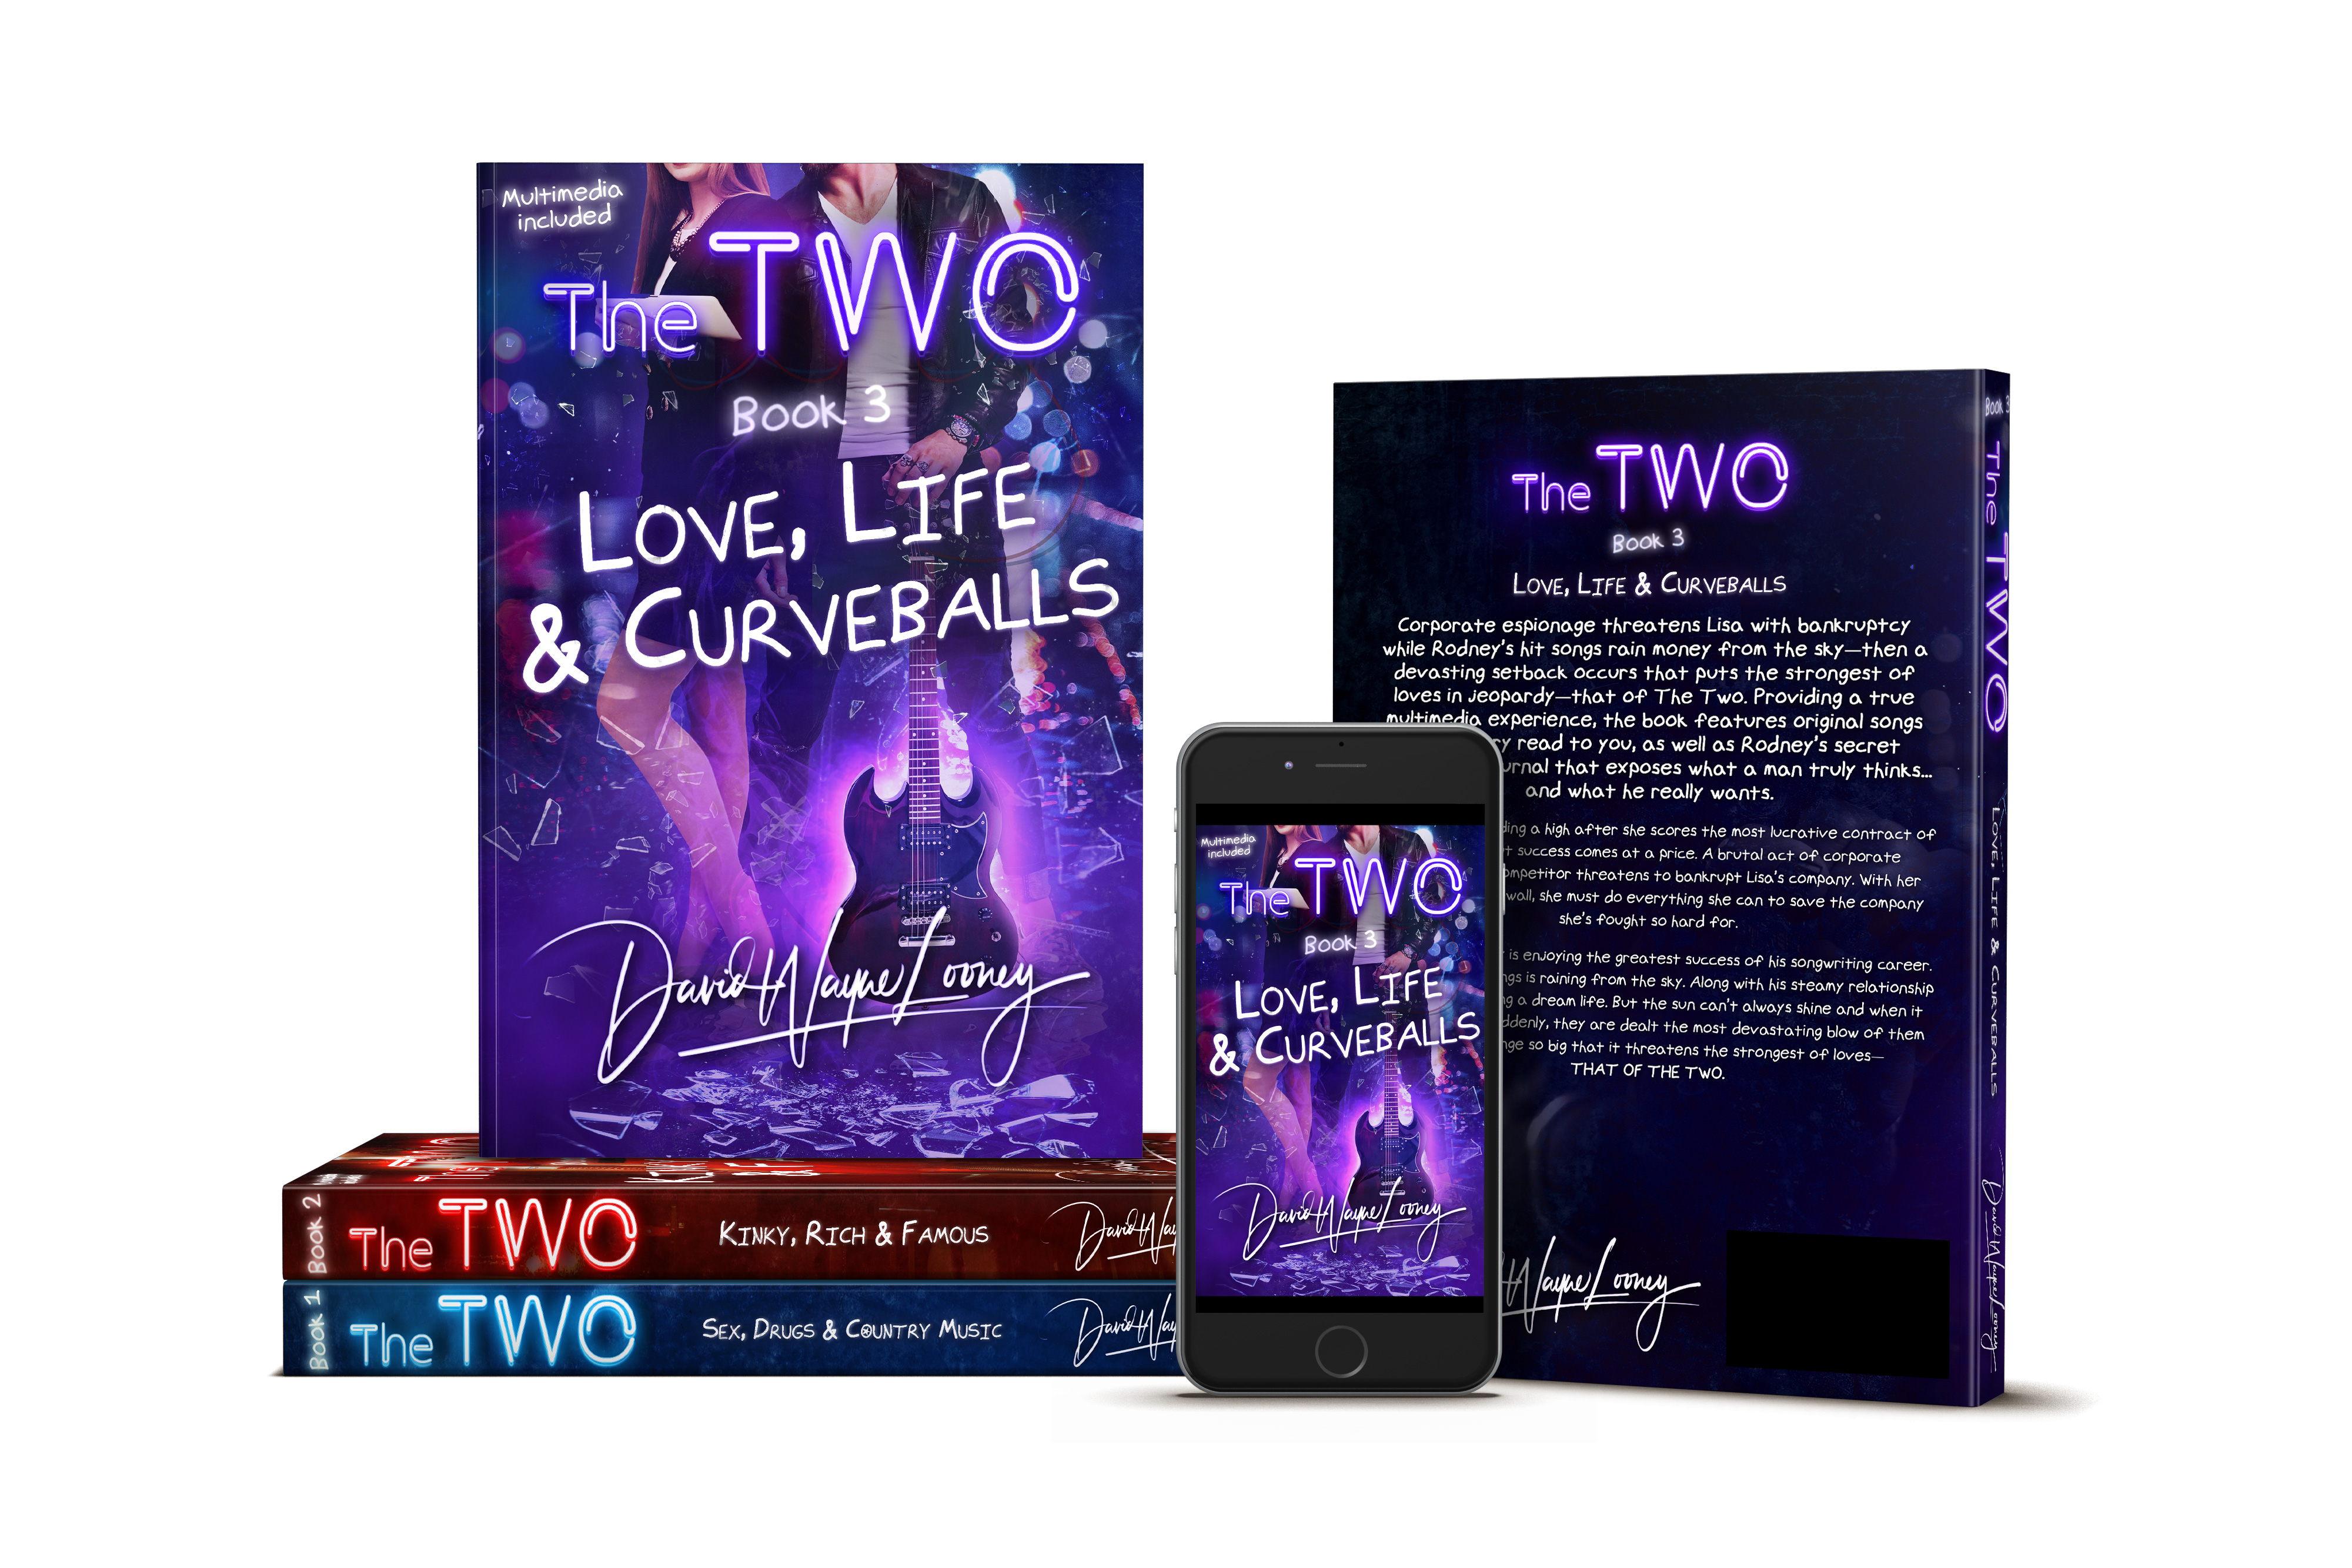 The Two - Book 2, Book 3 book covers and mockups